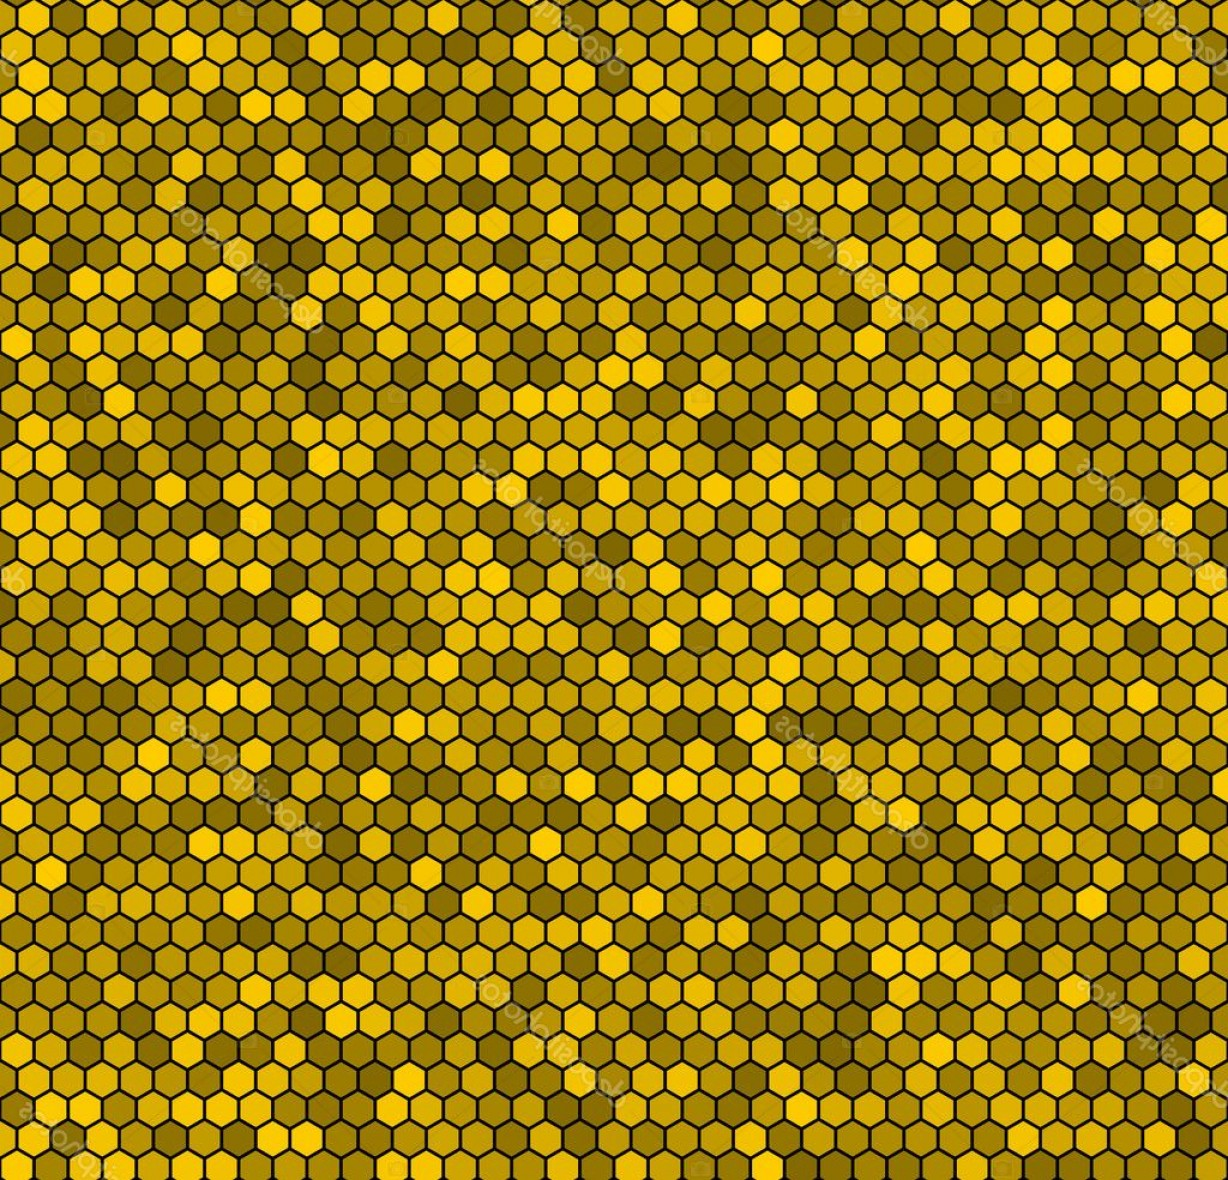 Honeycomb Background Pattern Vector: Stock Illustration Yellow Honeycomb Vector Background